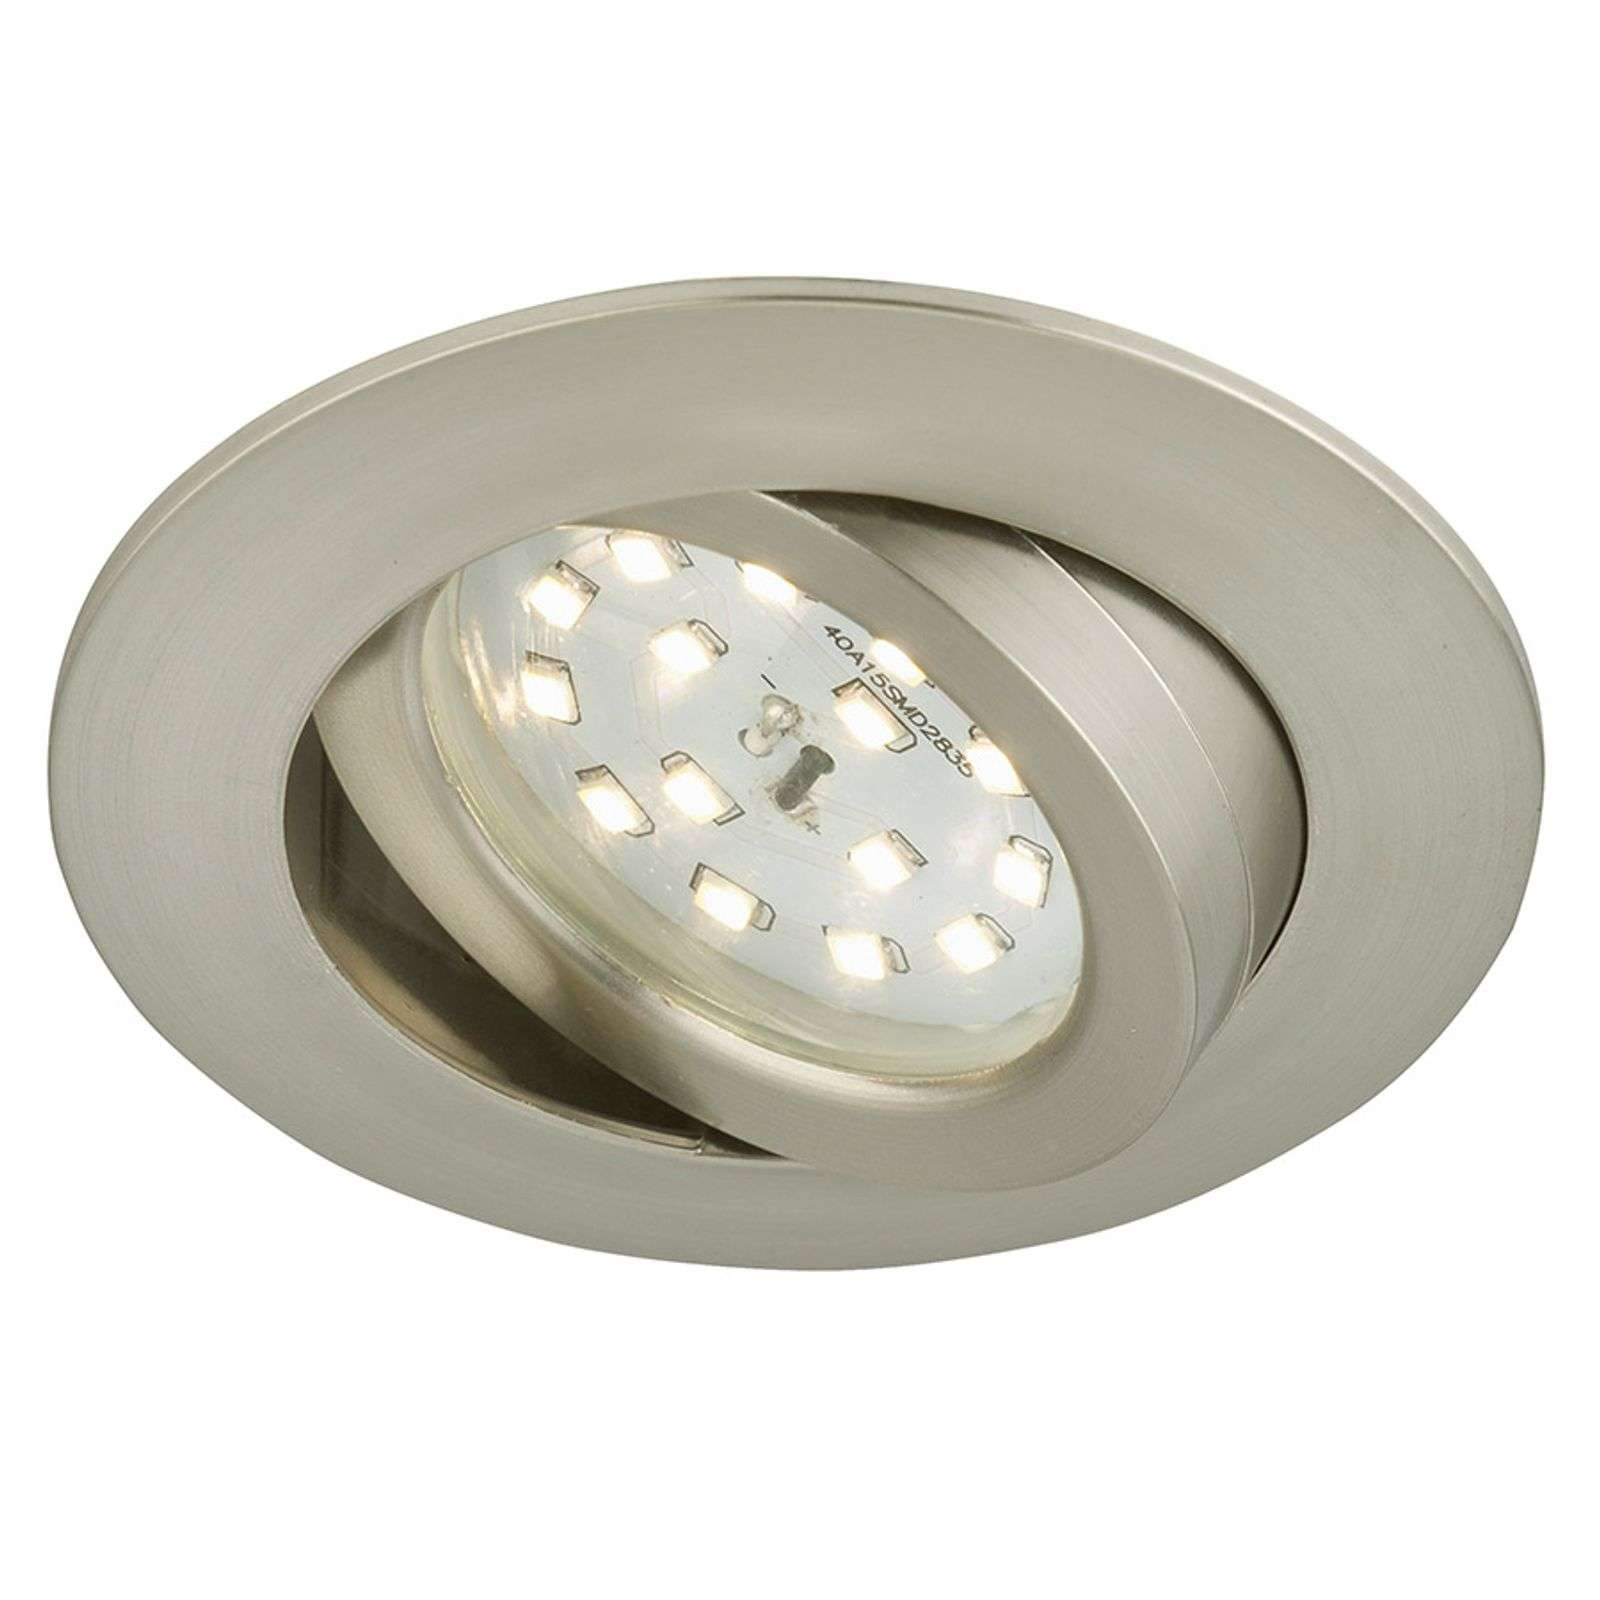 Spot encastré LED orientable Bert nickel mat